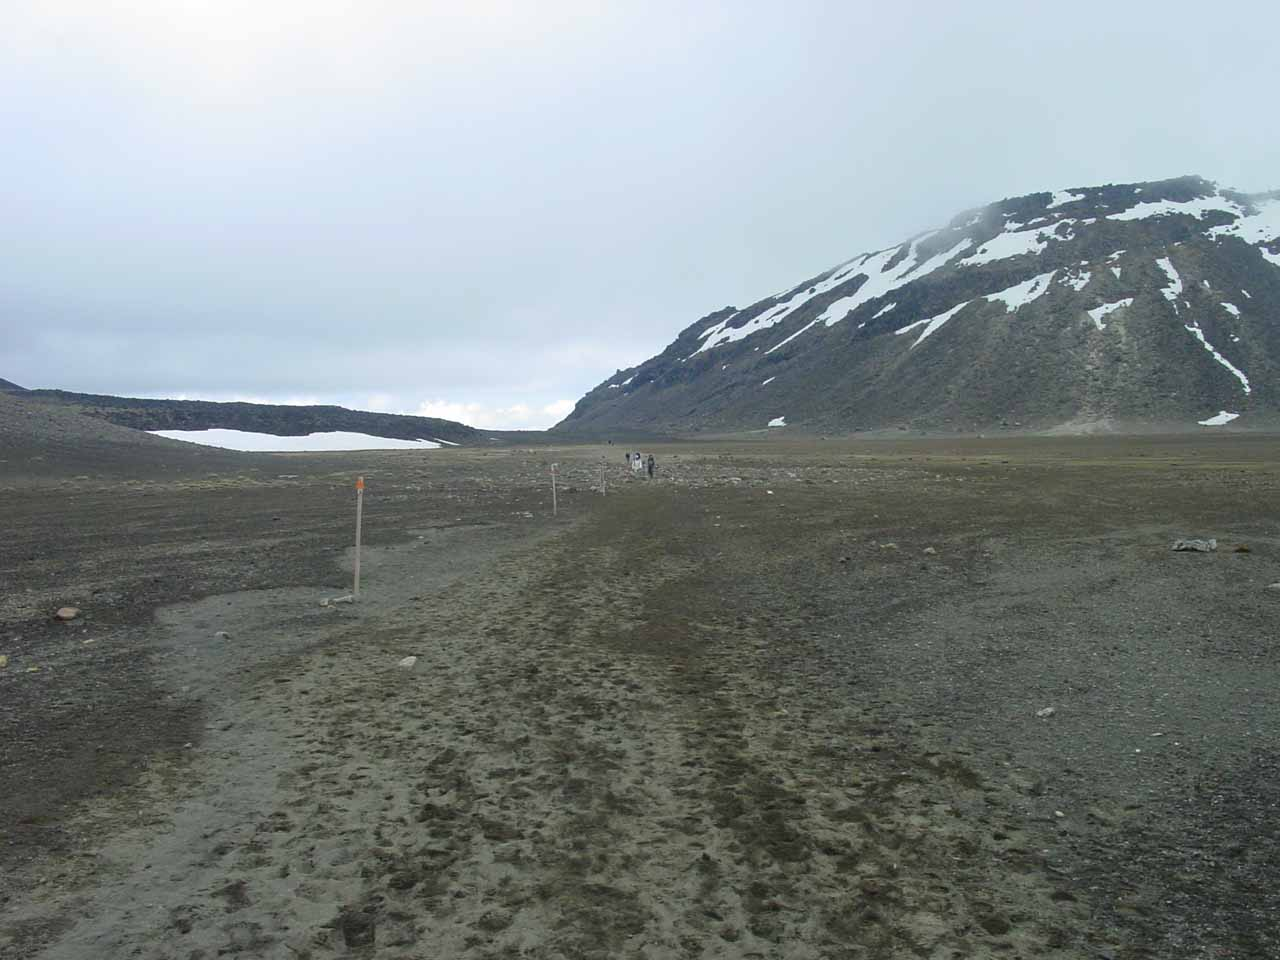 Still continuing through the long stretch of flat terrain that was the South and Central Craters